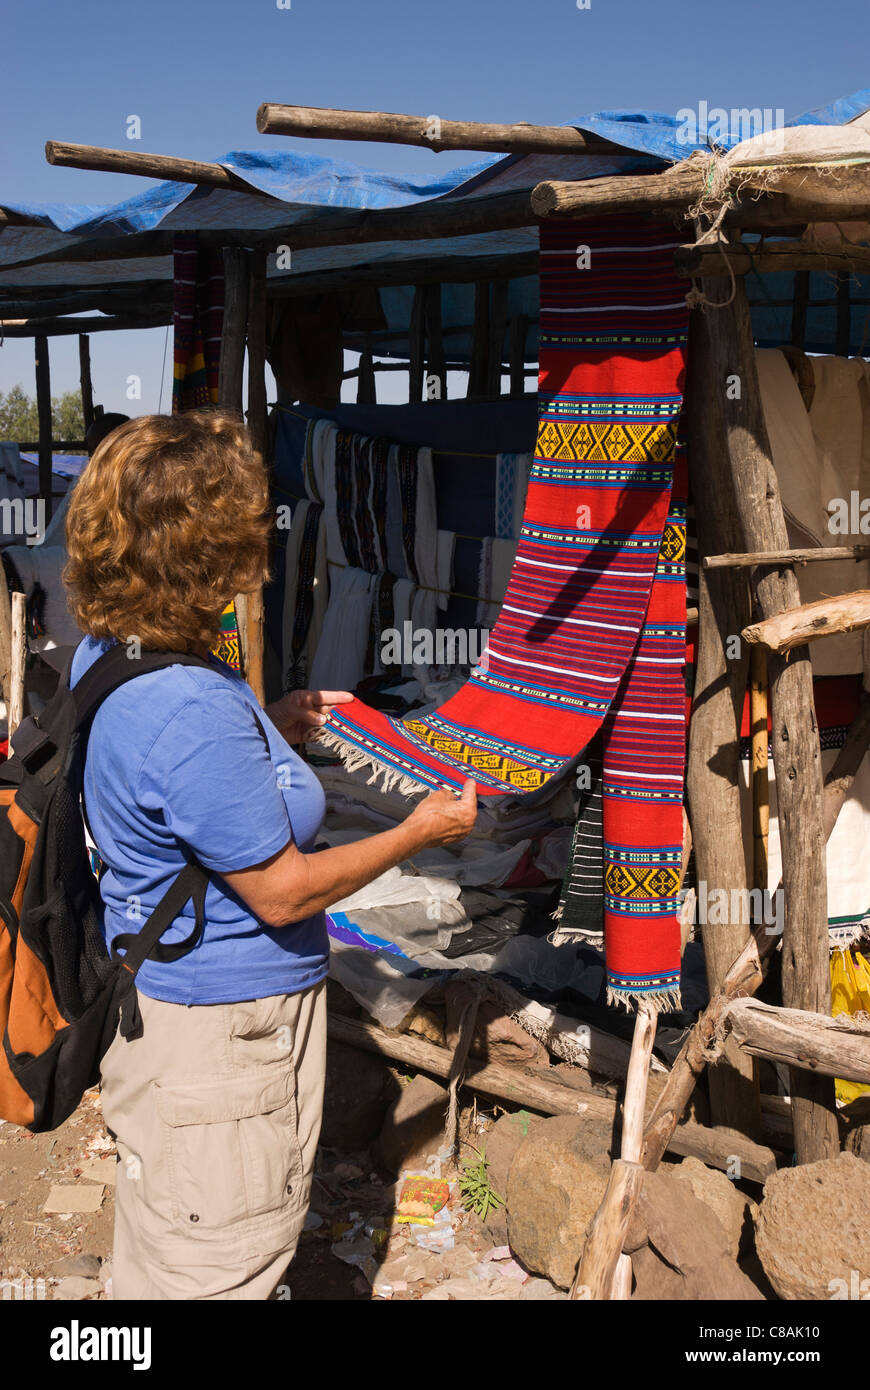 Elk200-3065v Ethiopia, Lalibela, model released Western woman looking at textiles - Stock Image